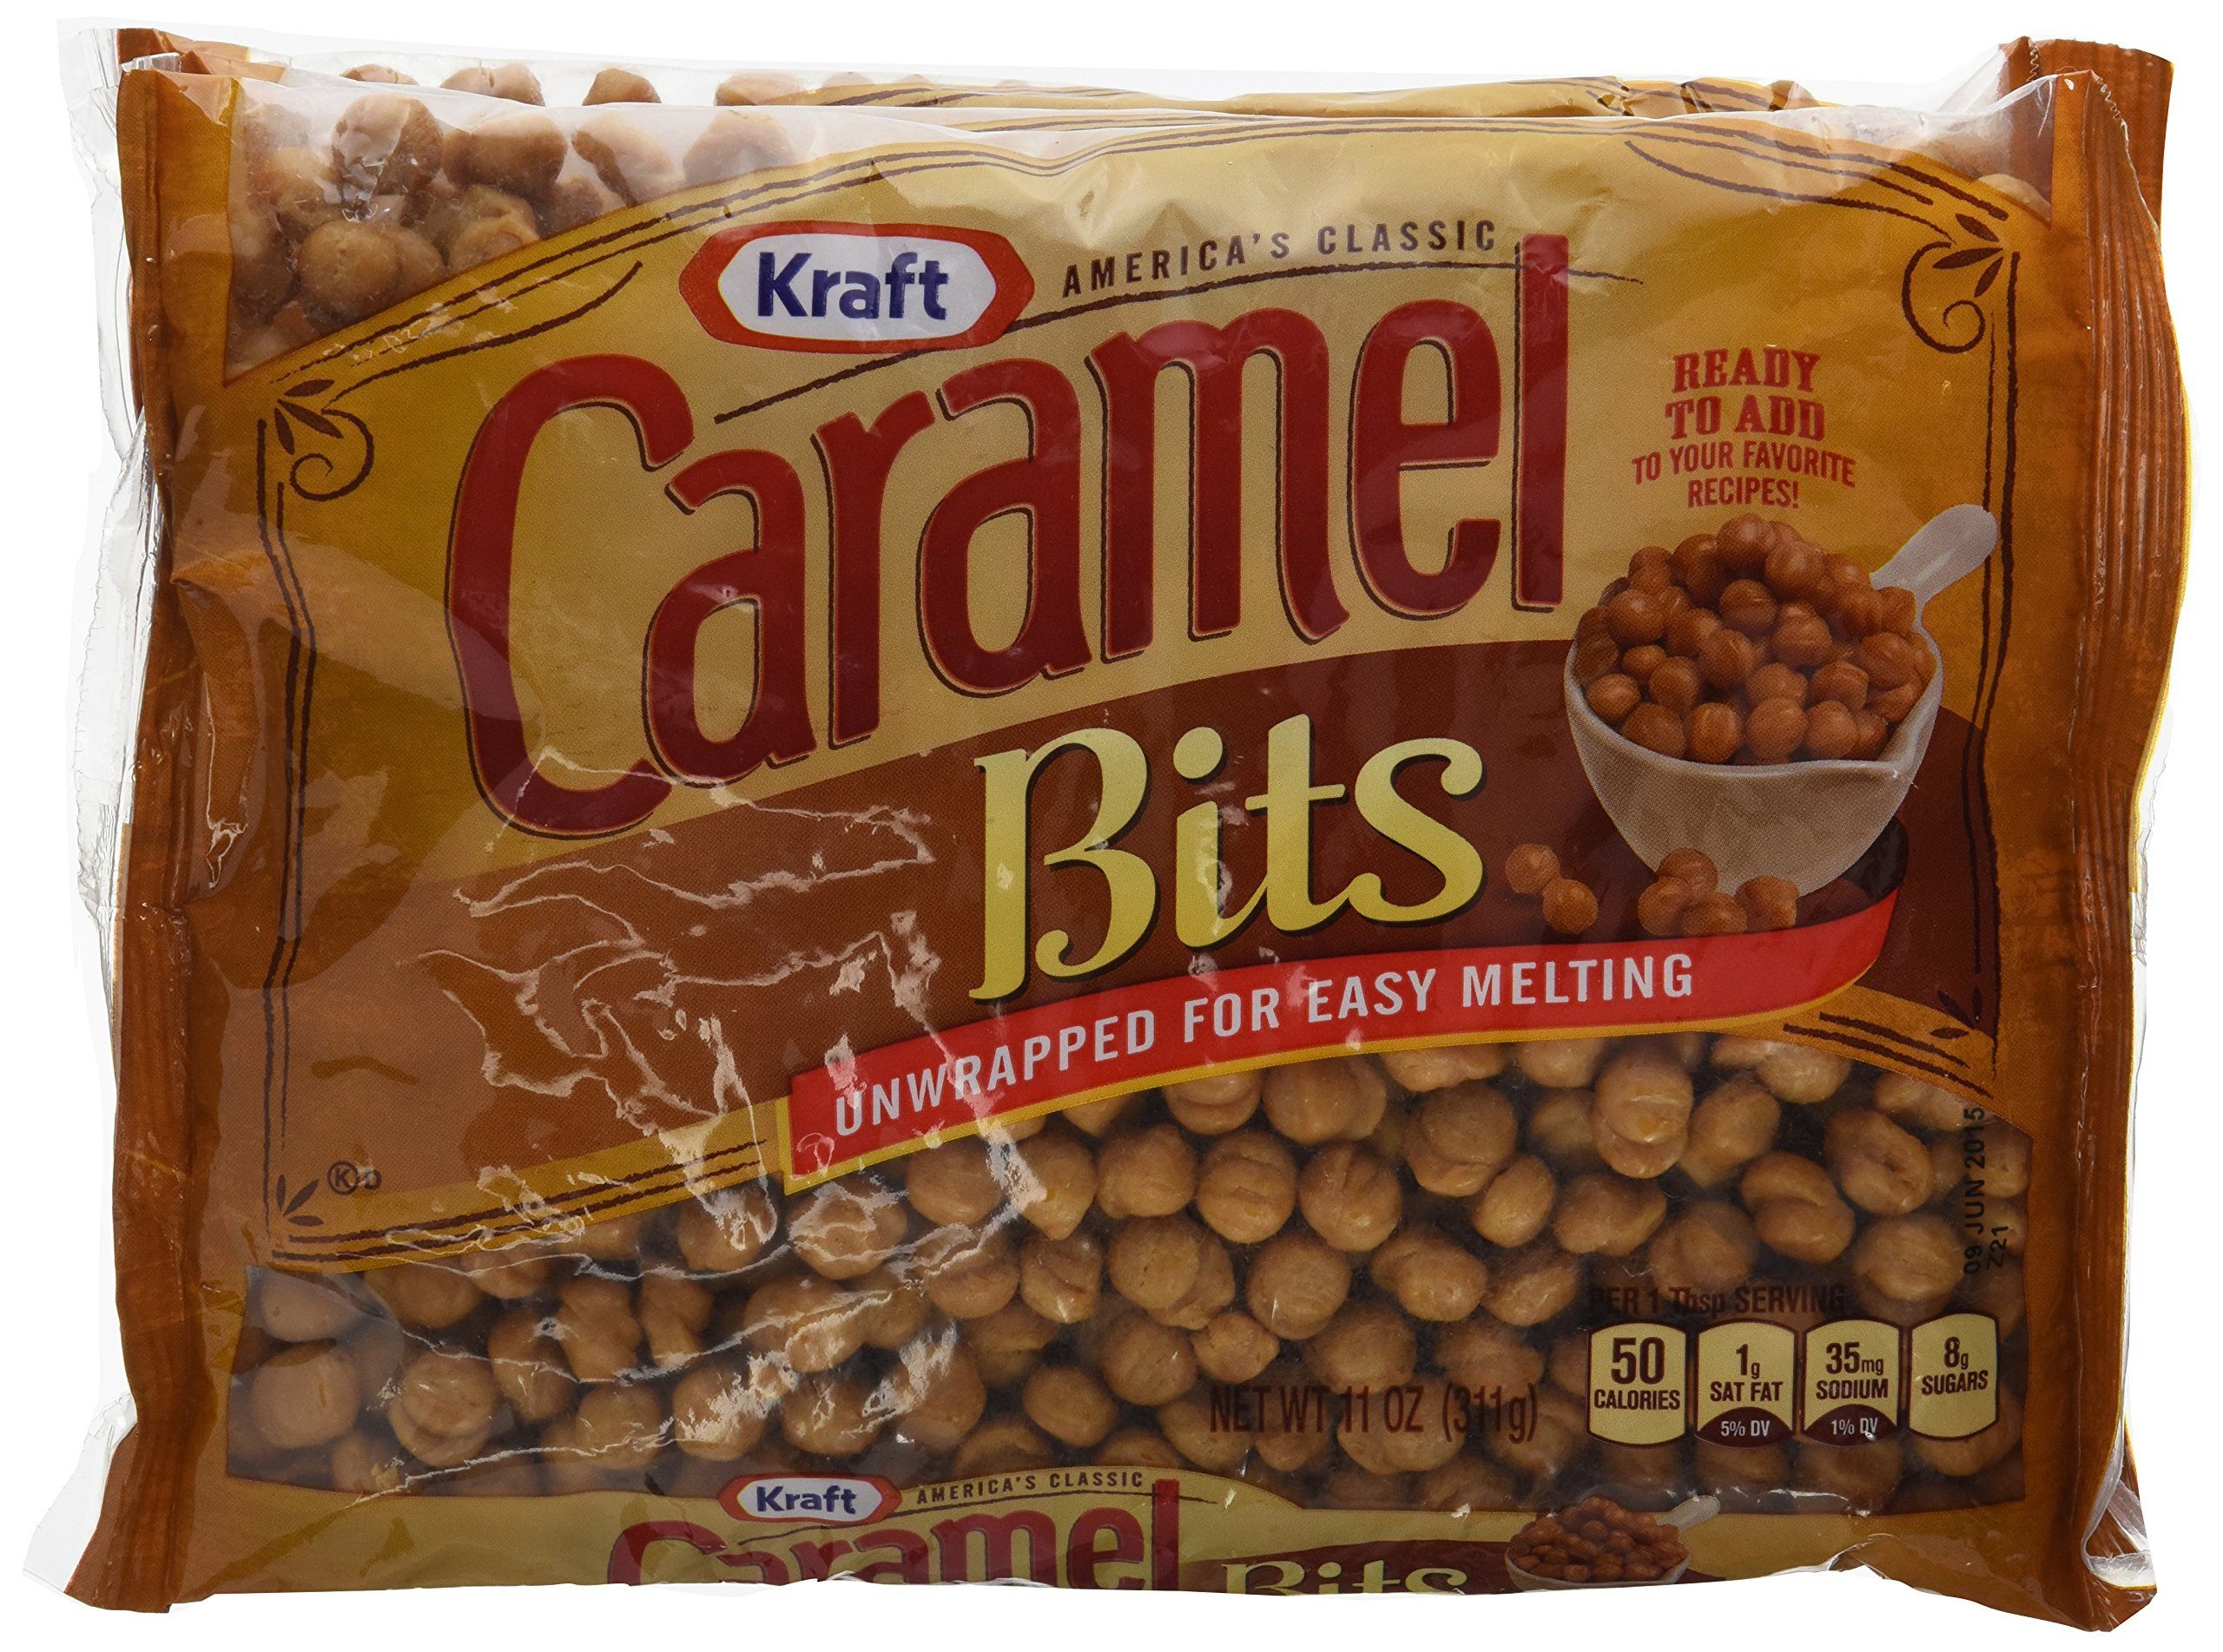 Kraft, Caramel Bits, 11oz Bag (Pack of 3)